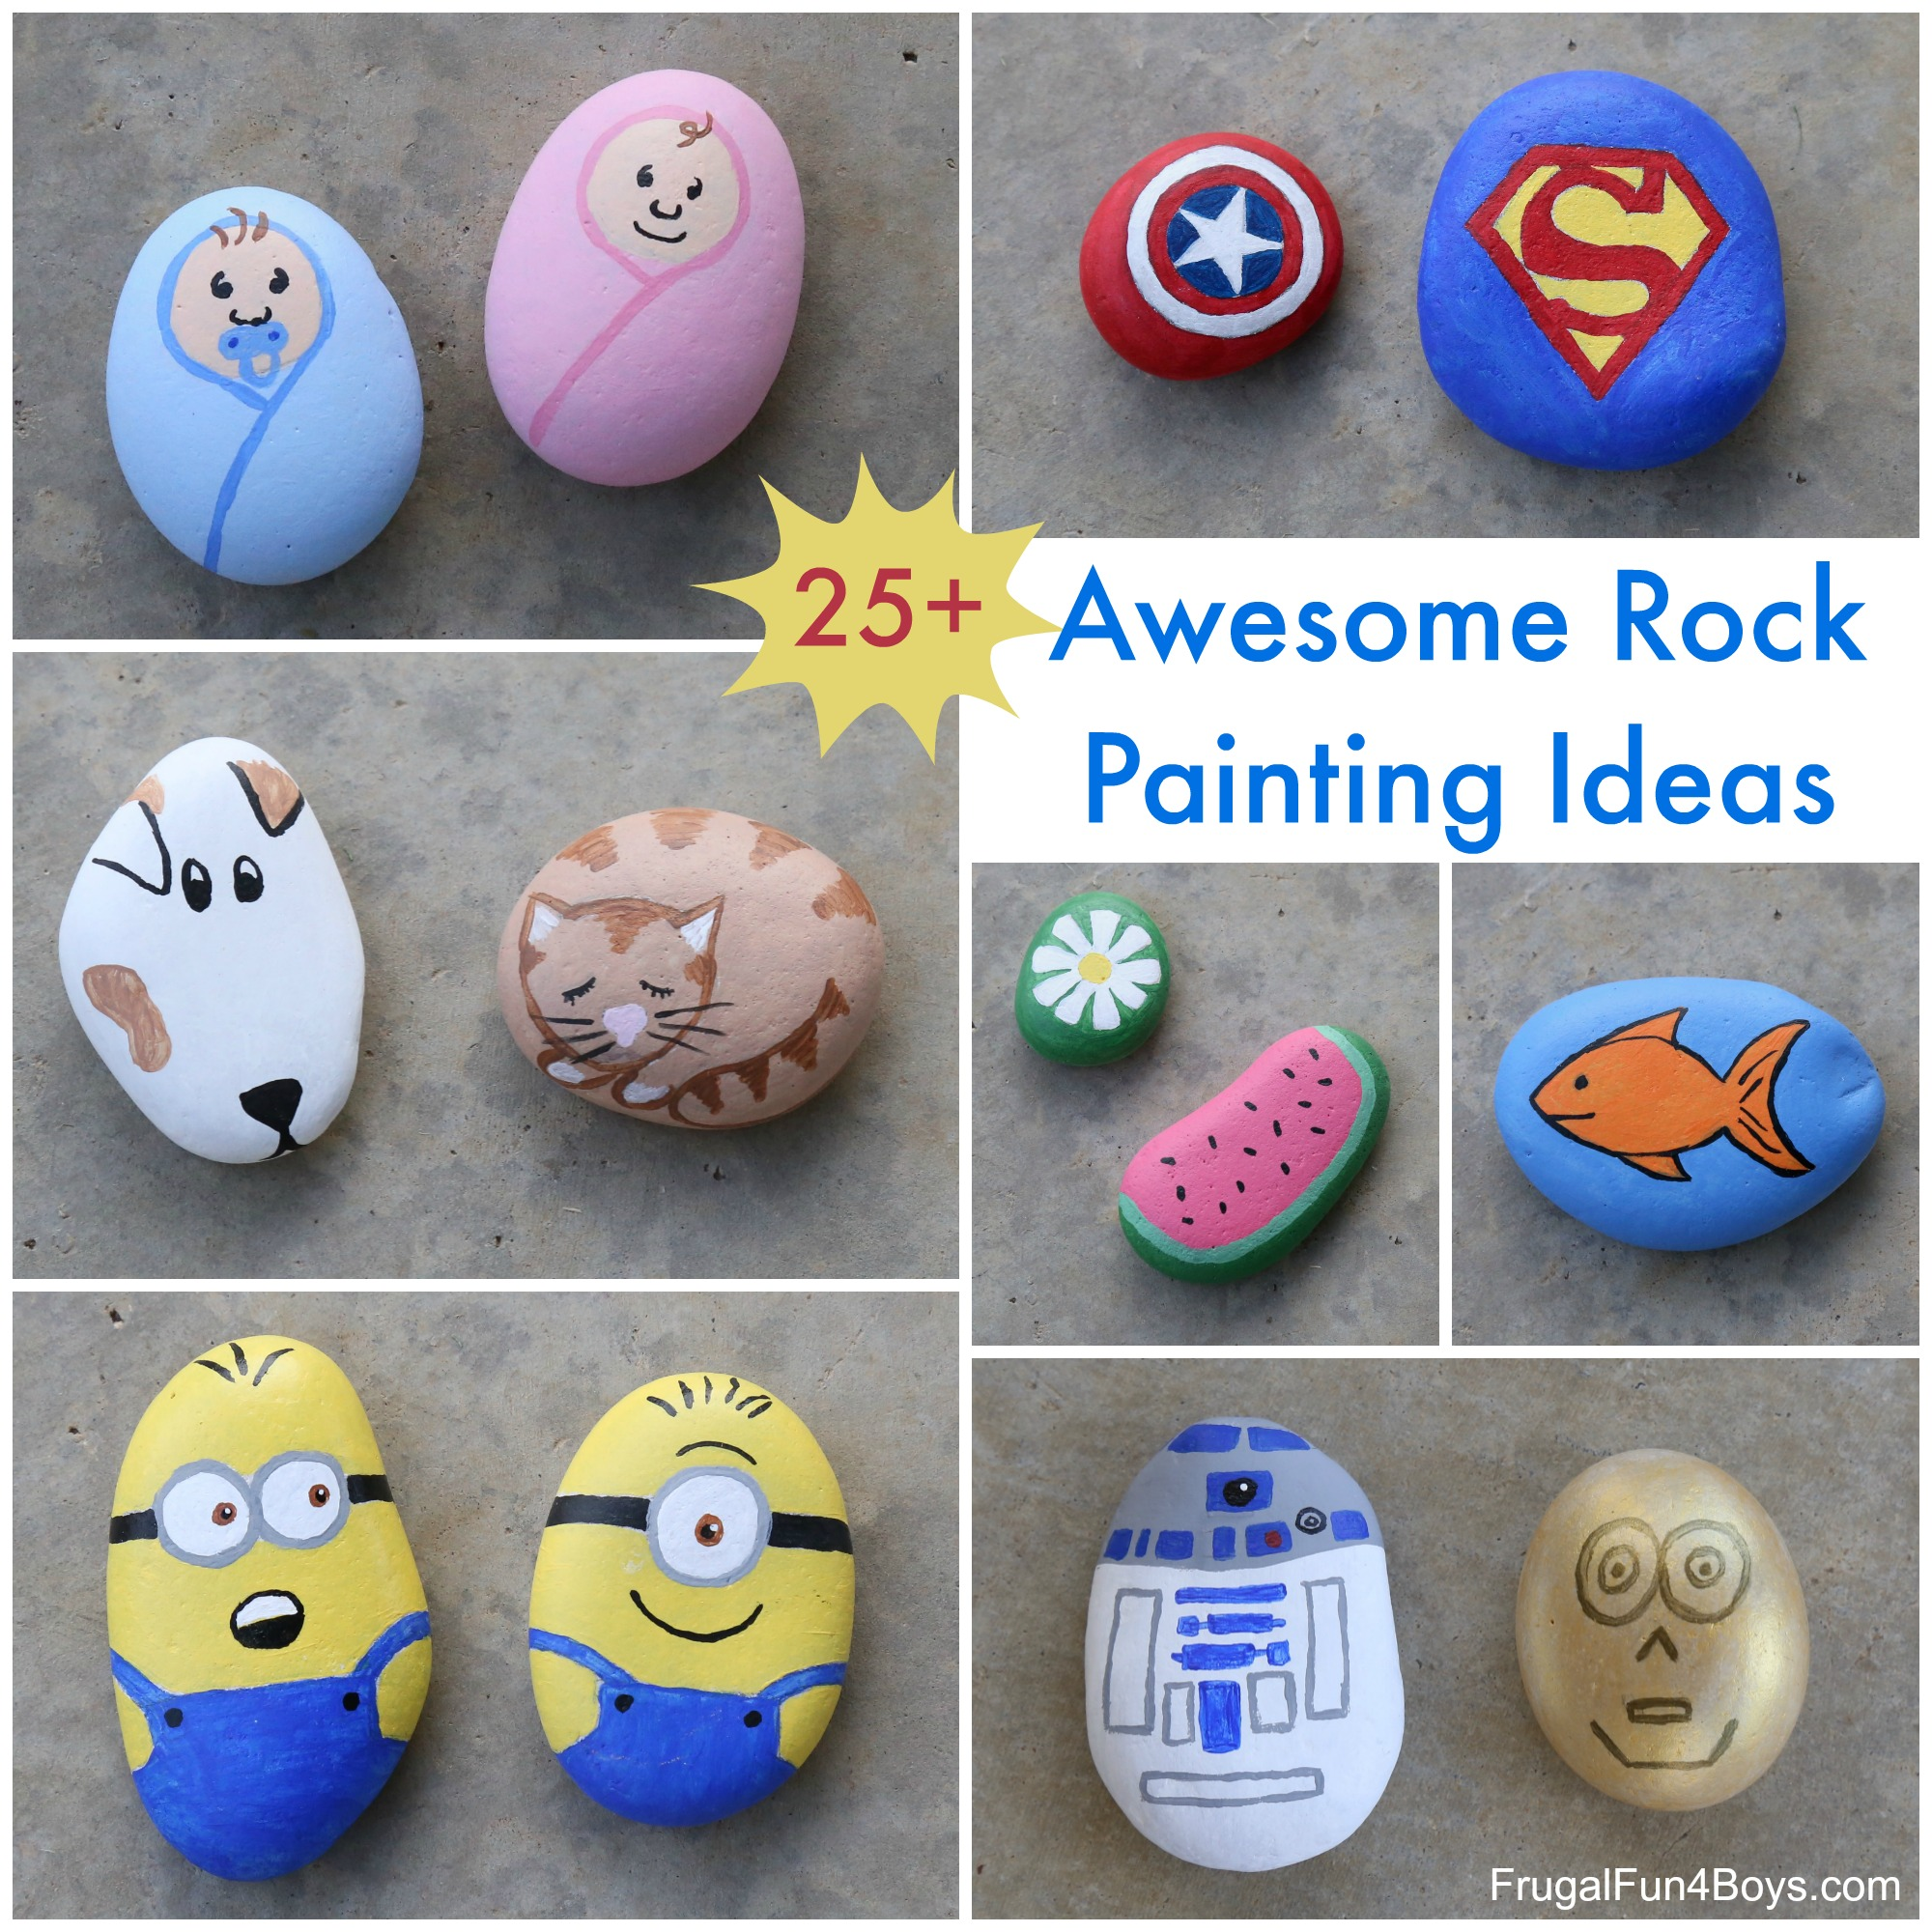 Cool Designs To Paint On Rocks